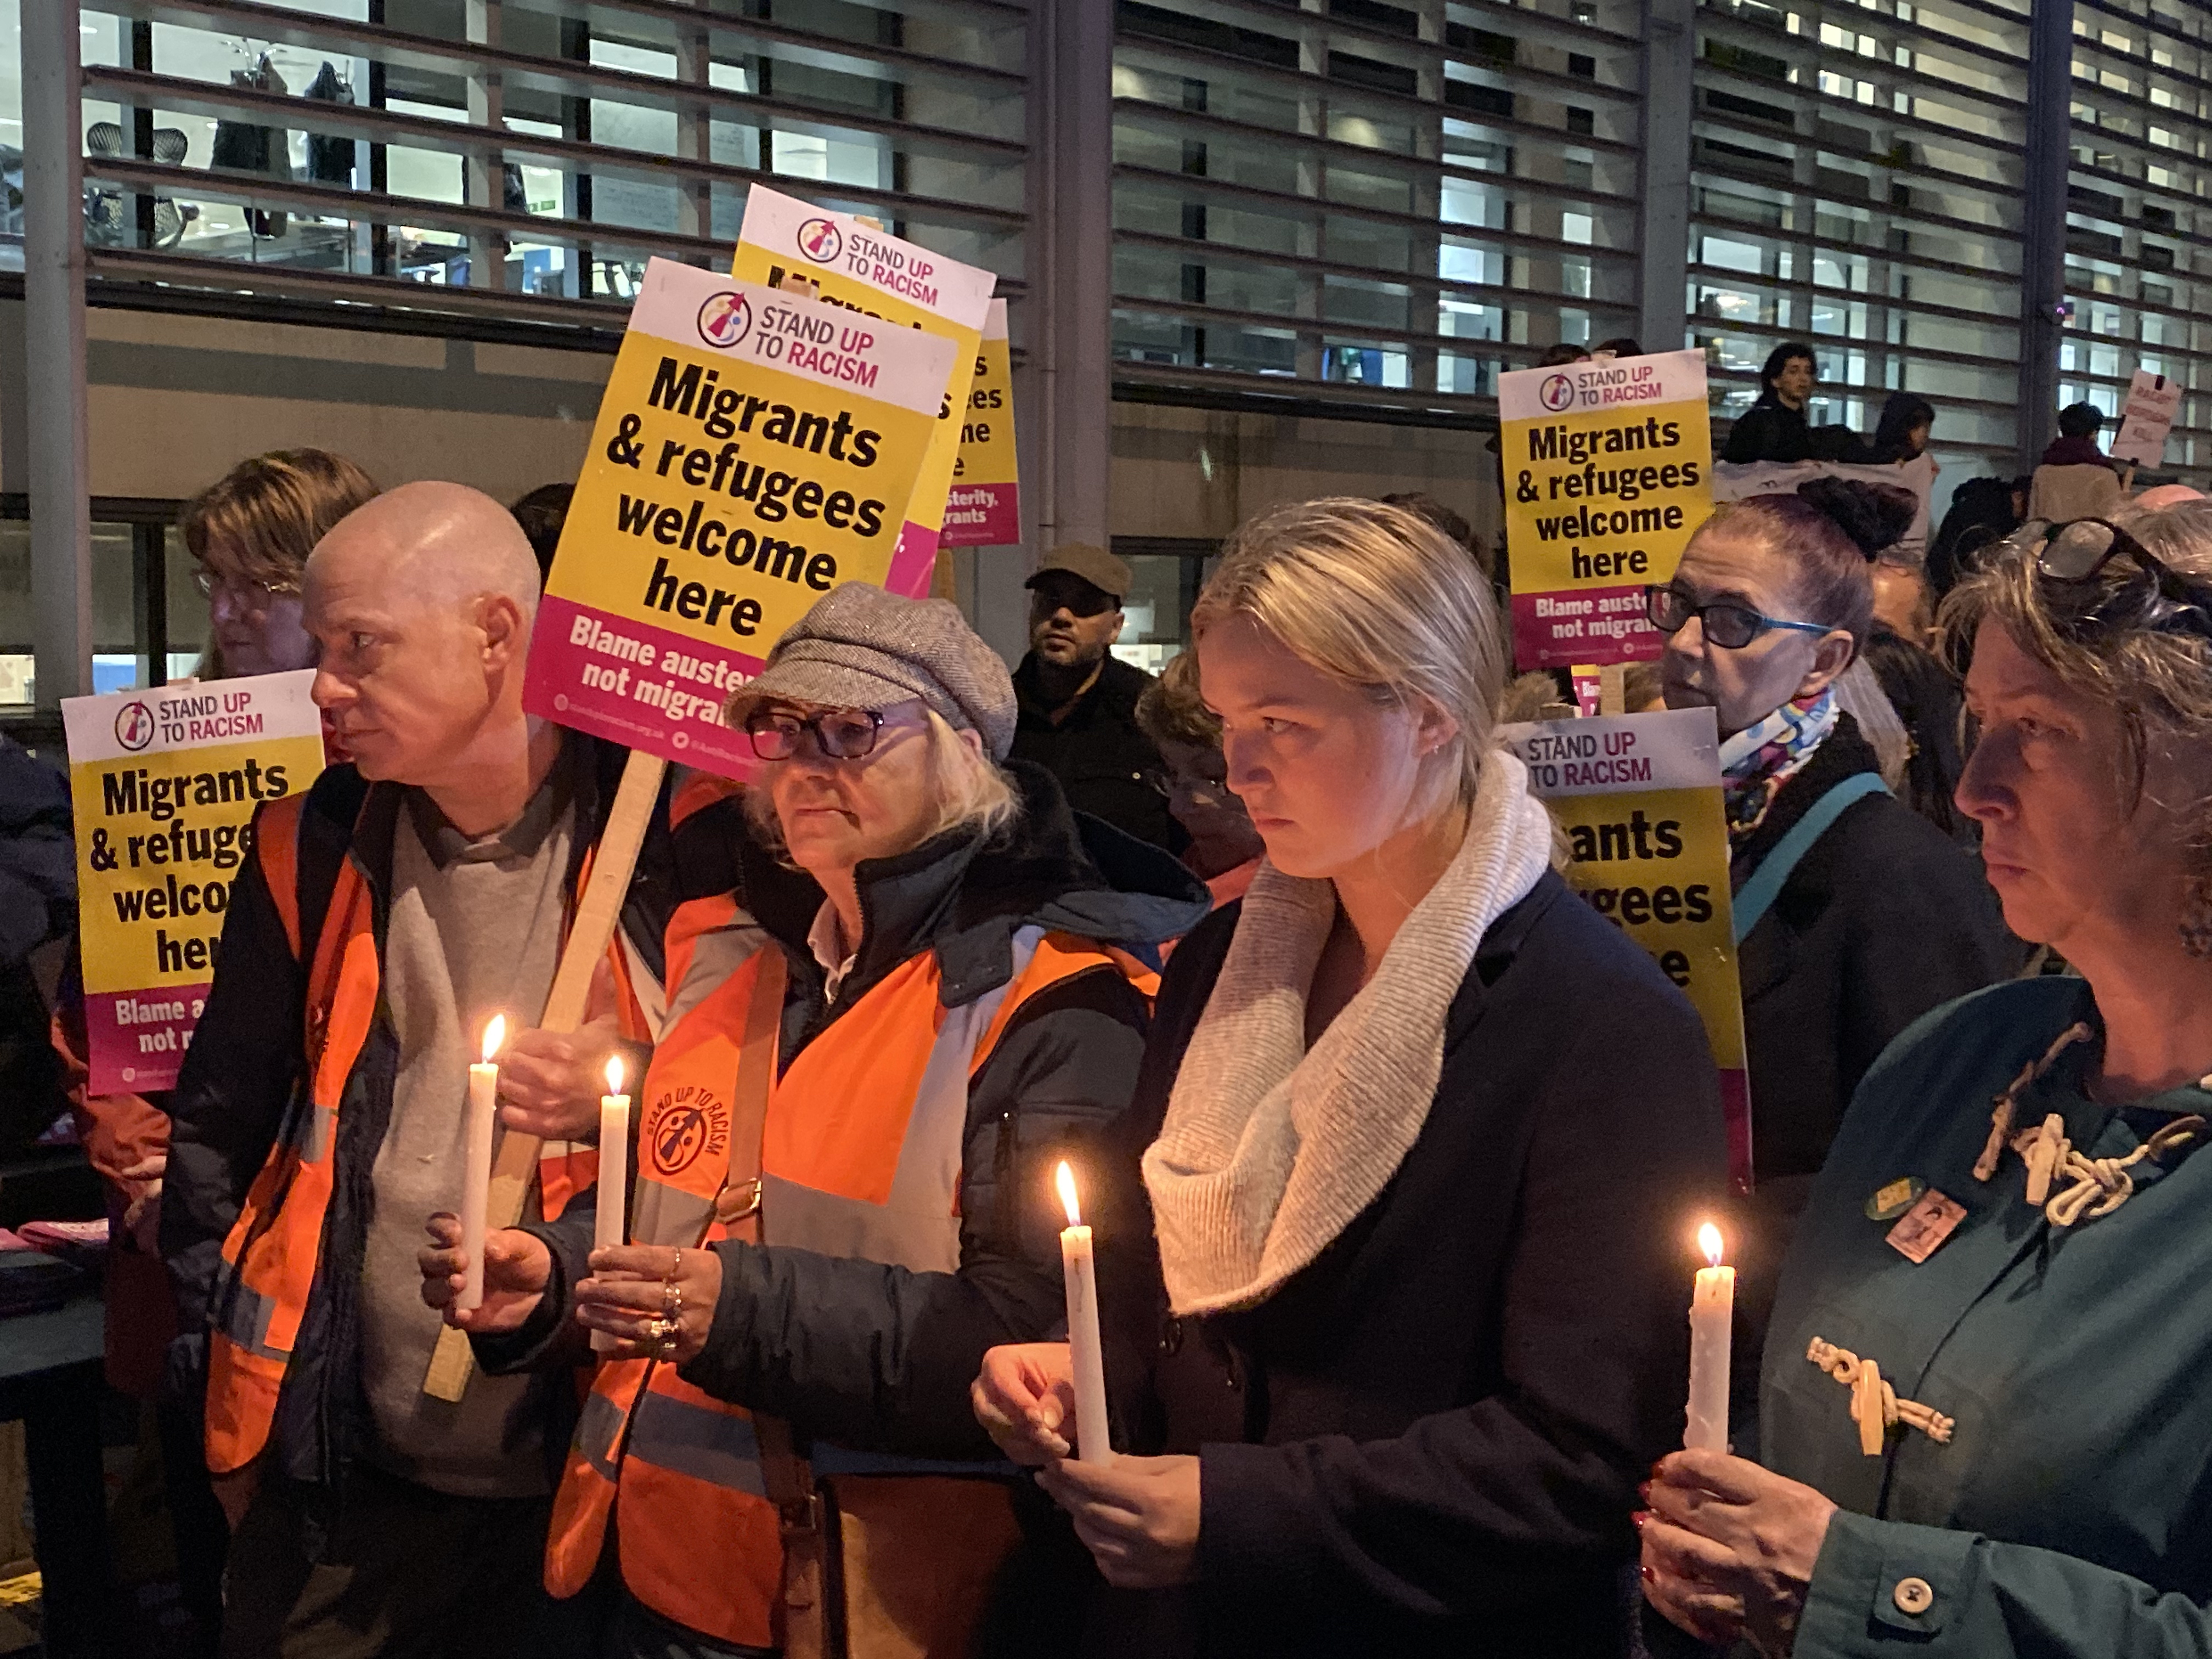 Mourners gather at the vigil outside the UK Home Office.